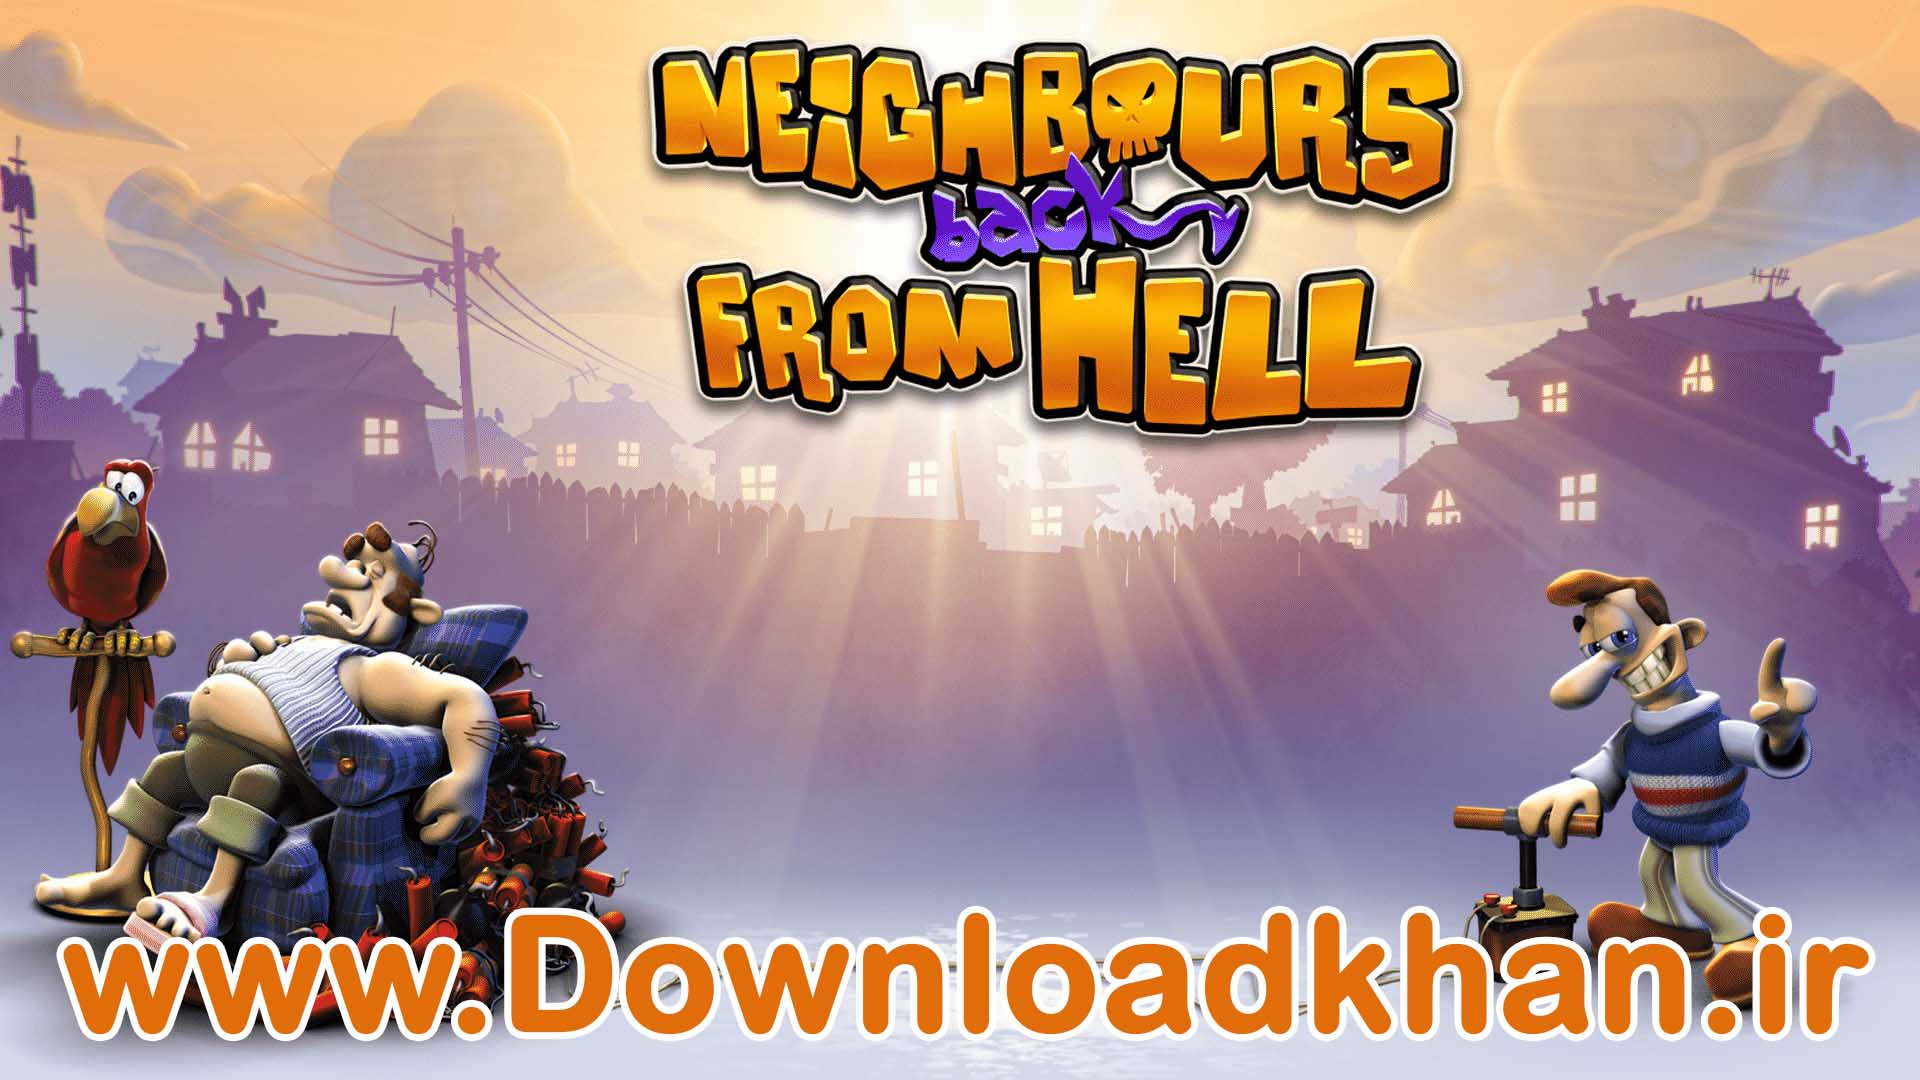 Neighbours_Back_From_Hell